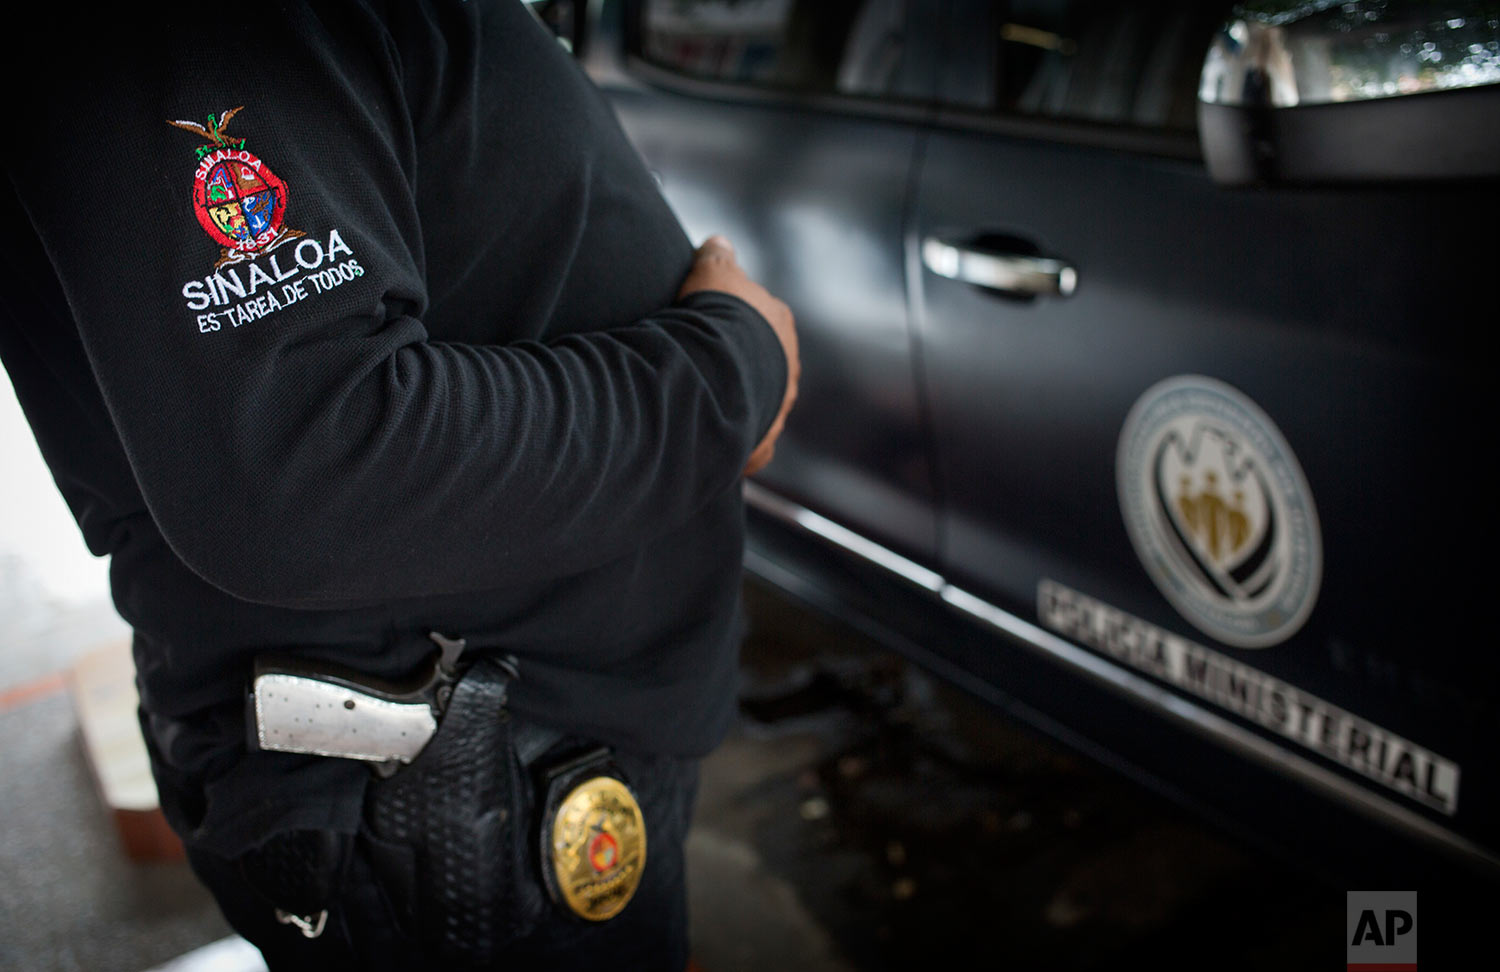 """In this June 28, 2017 photo, a police officer stands outside Riodoce's office in Culiacan, Sinaloa state, Mexico. After the killing of Riodoce co-founder Javier Valdez, two police were assigned by the state government to guard the newspaper's offices. Half-jokingly, some of the reporters wondered whether these officers are among the 50 percent of cops whom the governor himself has said are not trustworthy. The badge on the police officer's sleeve reads, in Spanish, """"Sinaloa is everyone's task."""" (AP Photo/Enric Marti)"""